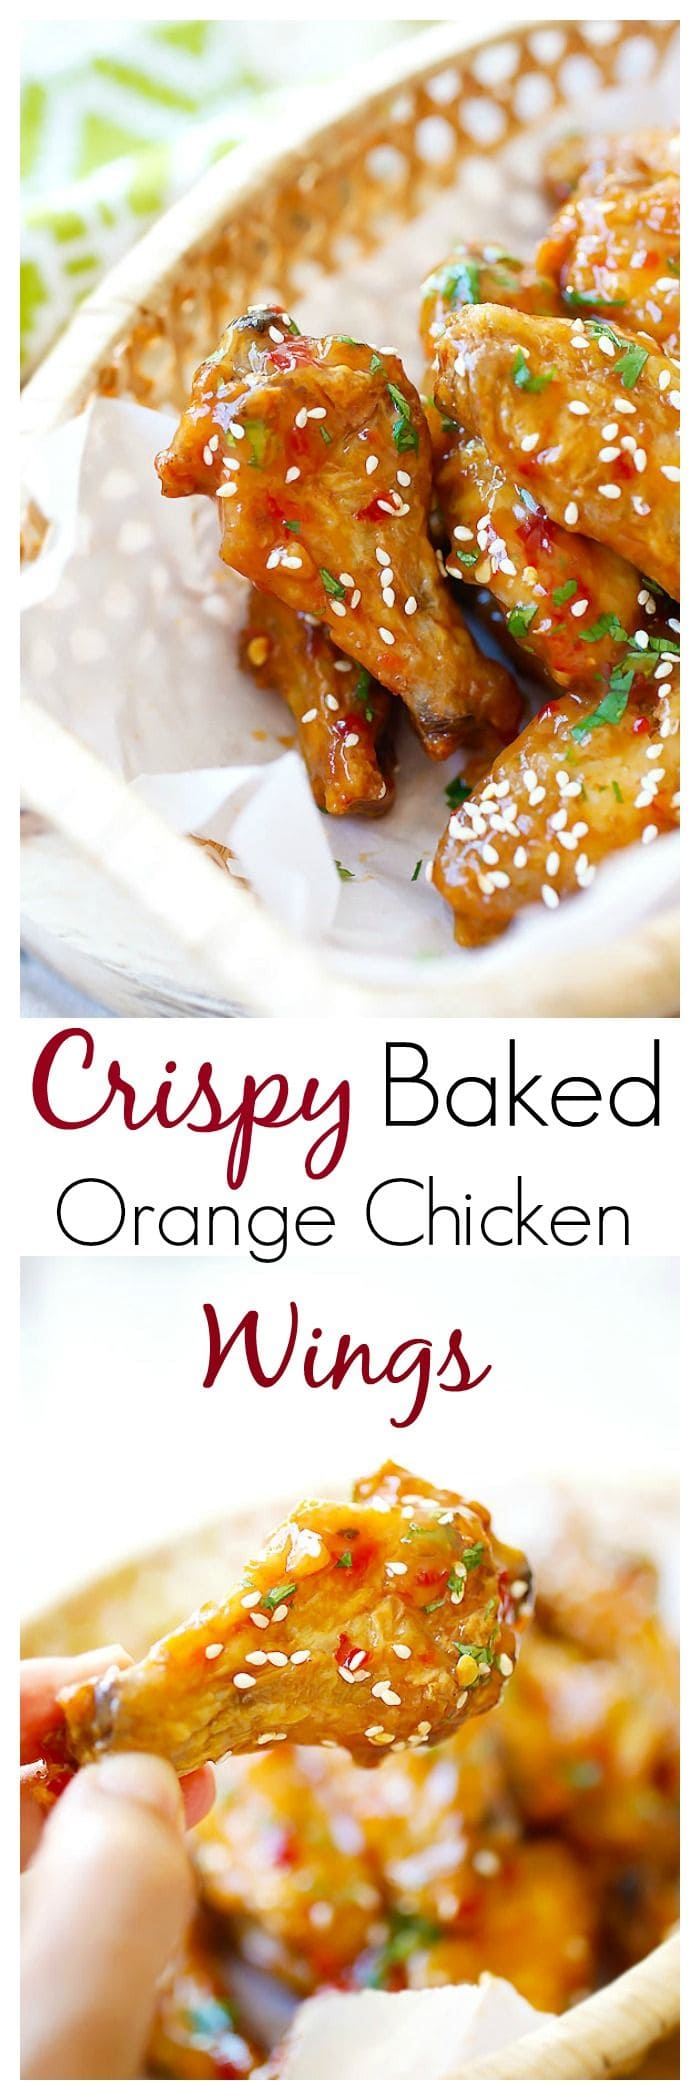 Baked Orange Chicken Wings - crispy, sticky baked wings (no frying) in an amazeballs orange sauce, so yummy | rasamalaysia.com